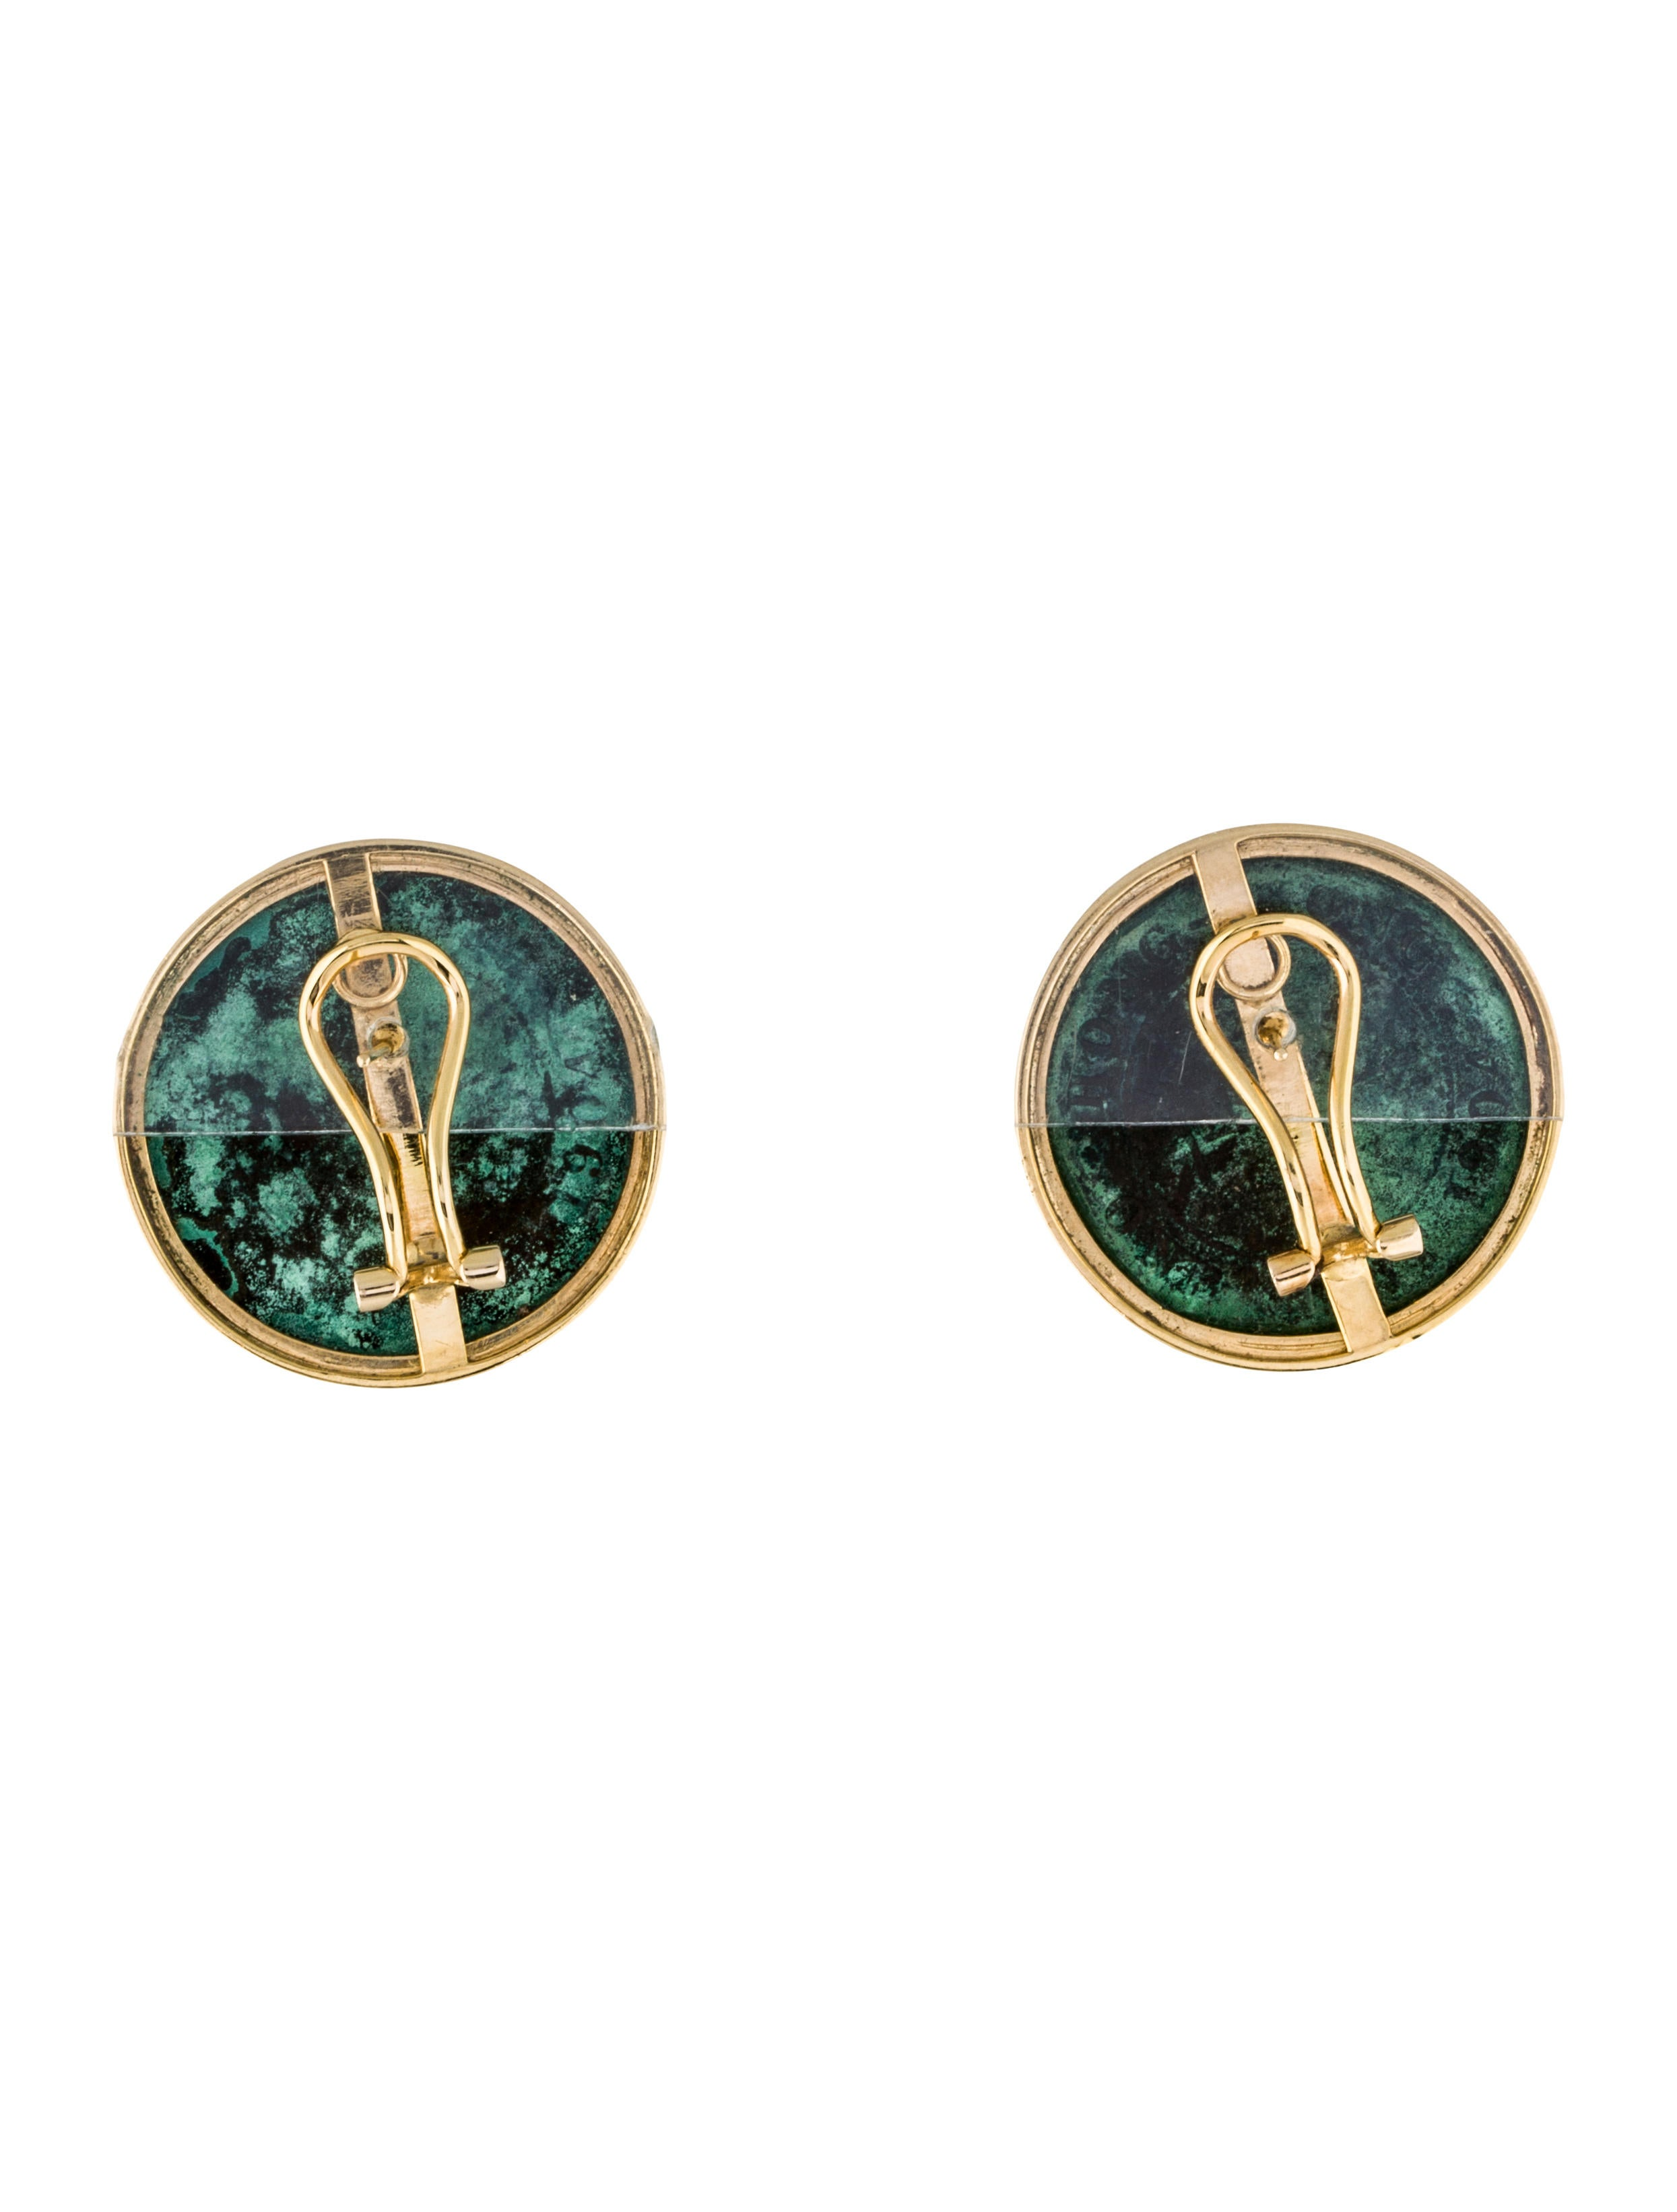 earrings hong kong edward vii coin earrclips earrings